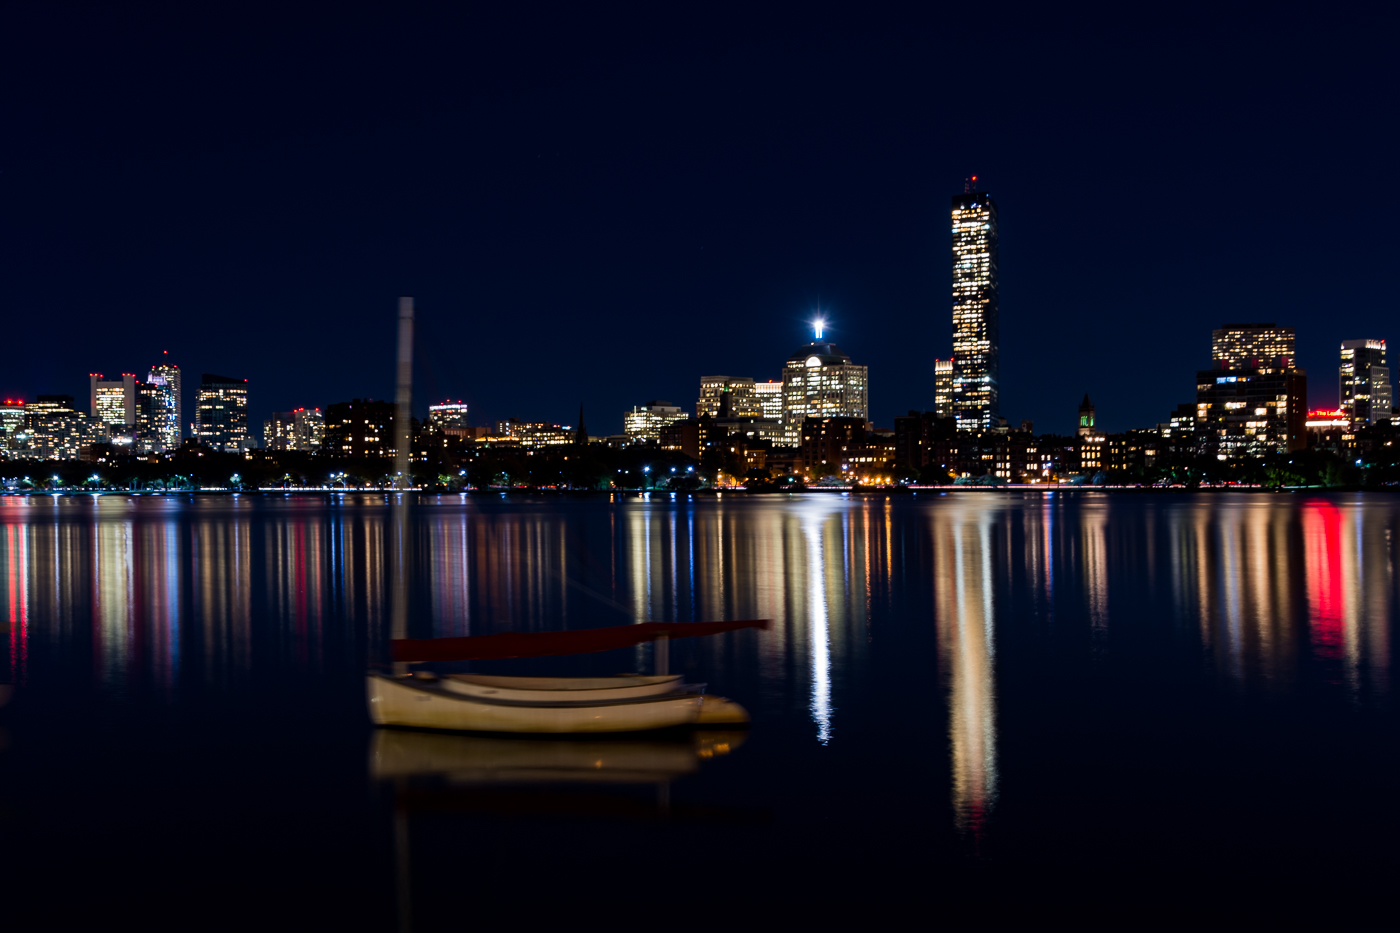 Across the Charles (c) Paul Newcomb